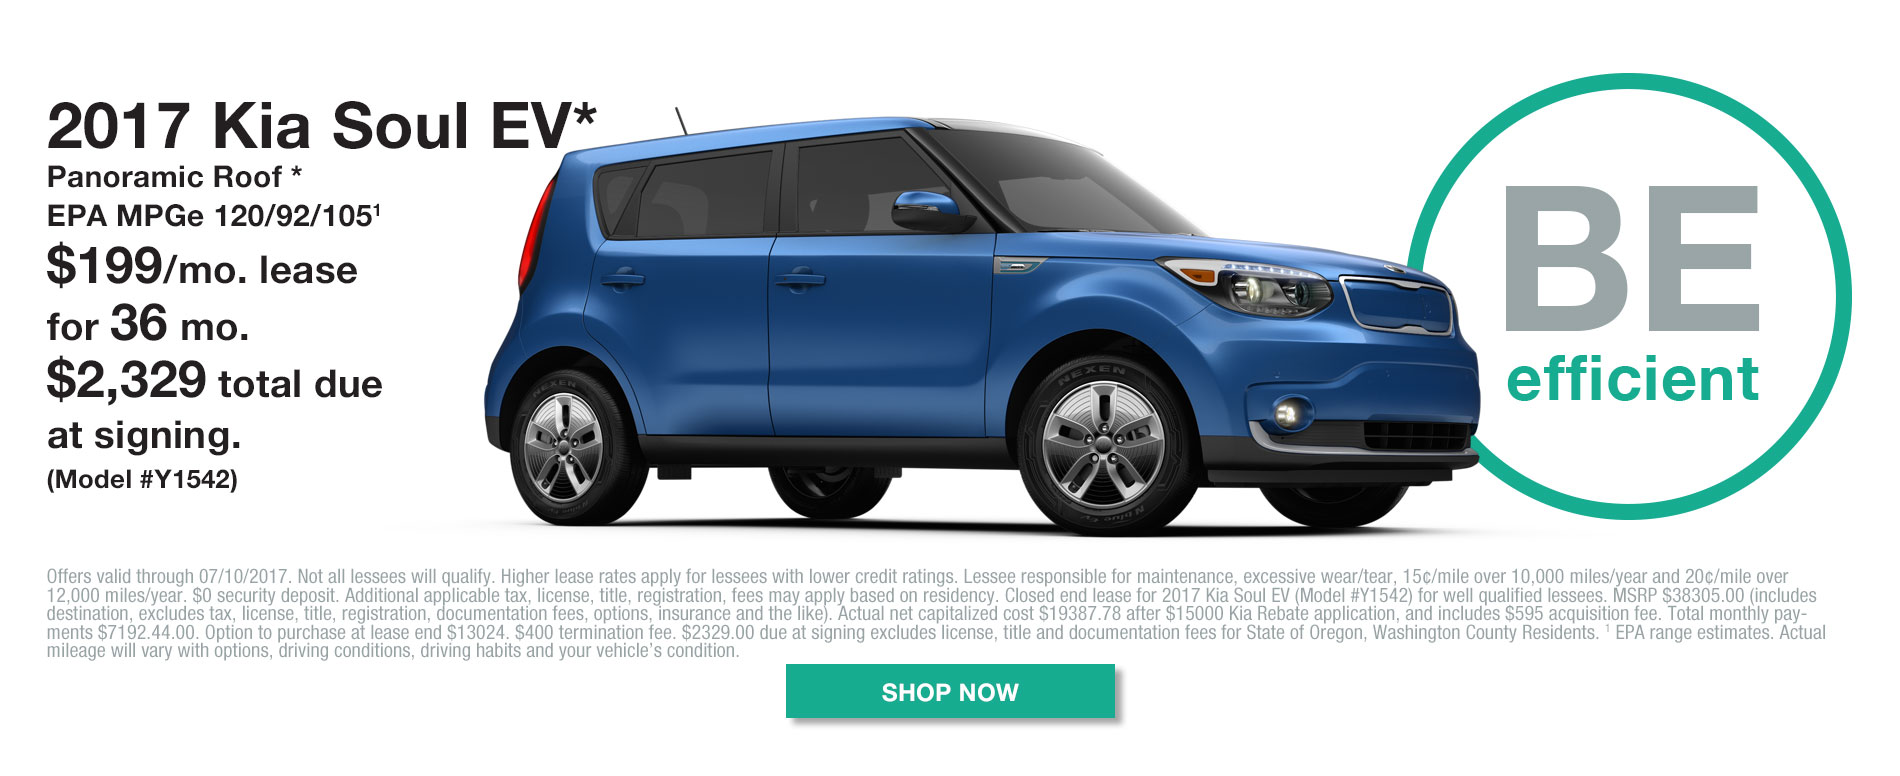 2017 Kia Soul EV - Model# Y1542 - Lease for $199/mo for 36 months with $2329 due at signing.